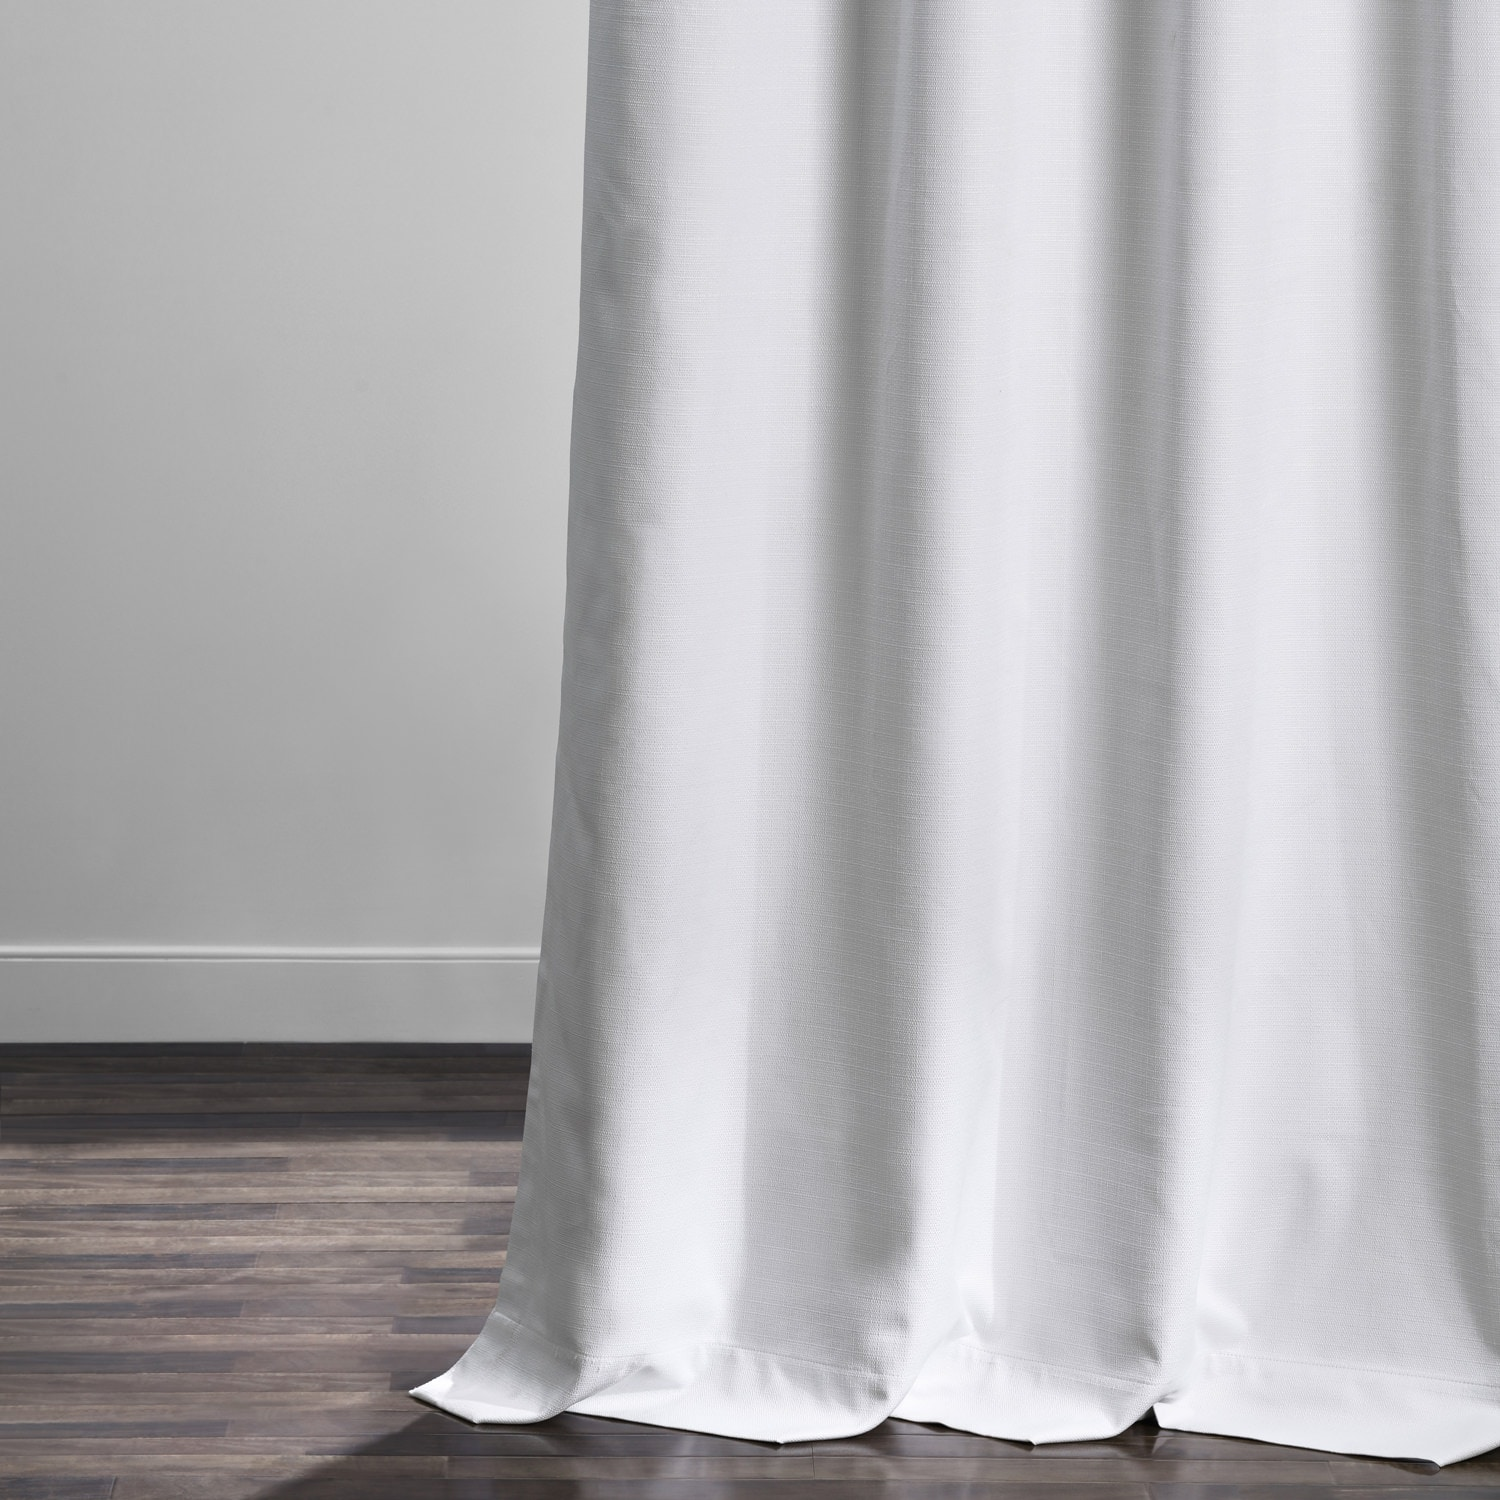 White Italian Textured Faux Linen Hotel Blackout Curtain